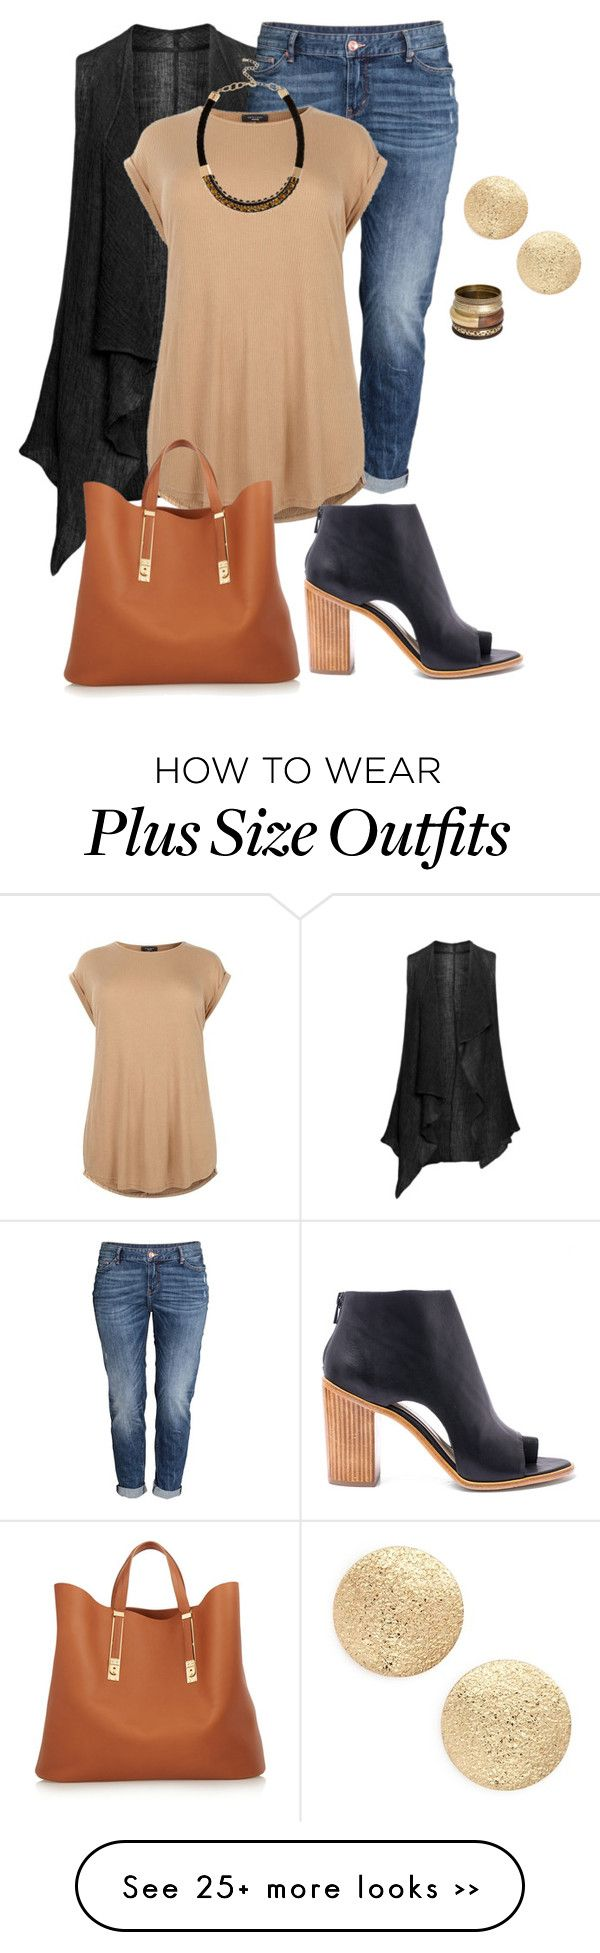 """plus size fall chic"" by kristie-payne on Polyvore featuring Isolde Roth, H&M, Loeffler Randall, Nordstrom, River Island and Sophie Hulme"